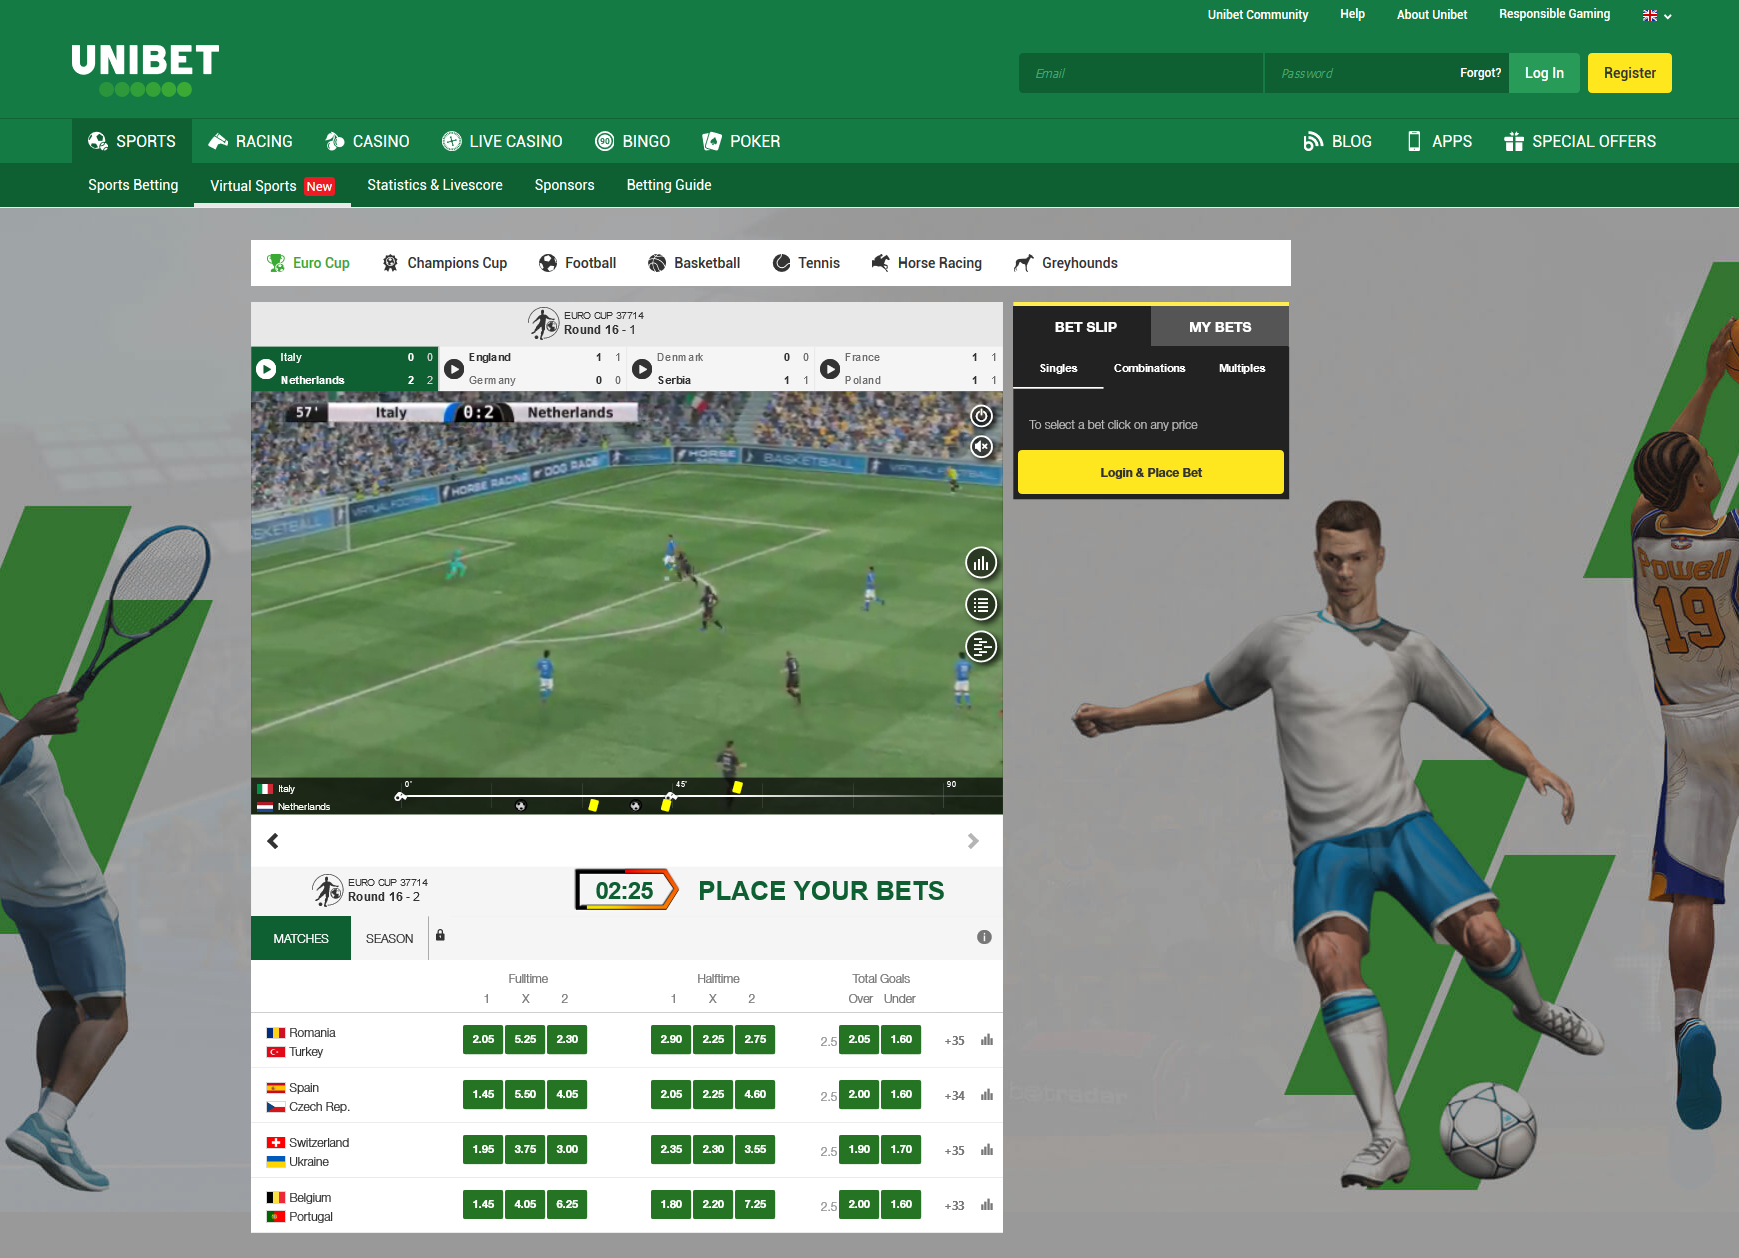 bookmaker unibet virtual sports betting offer